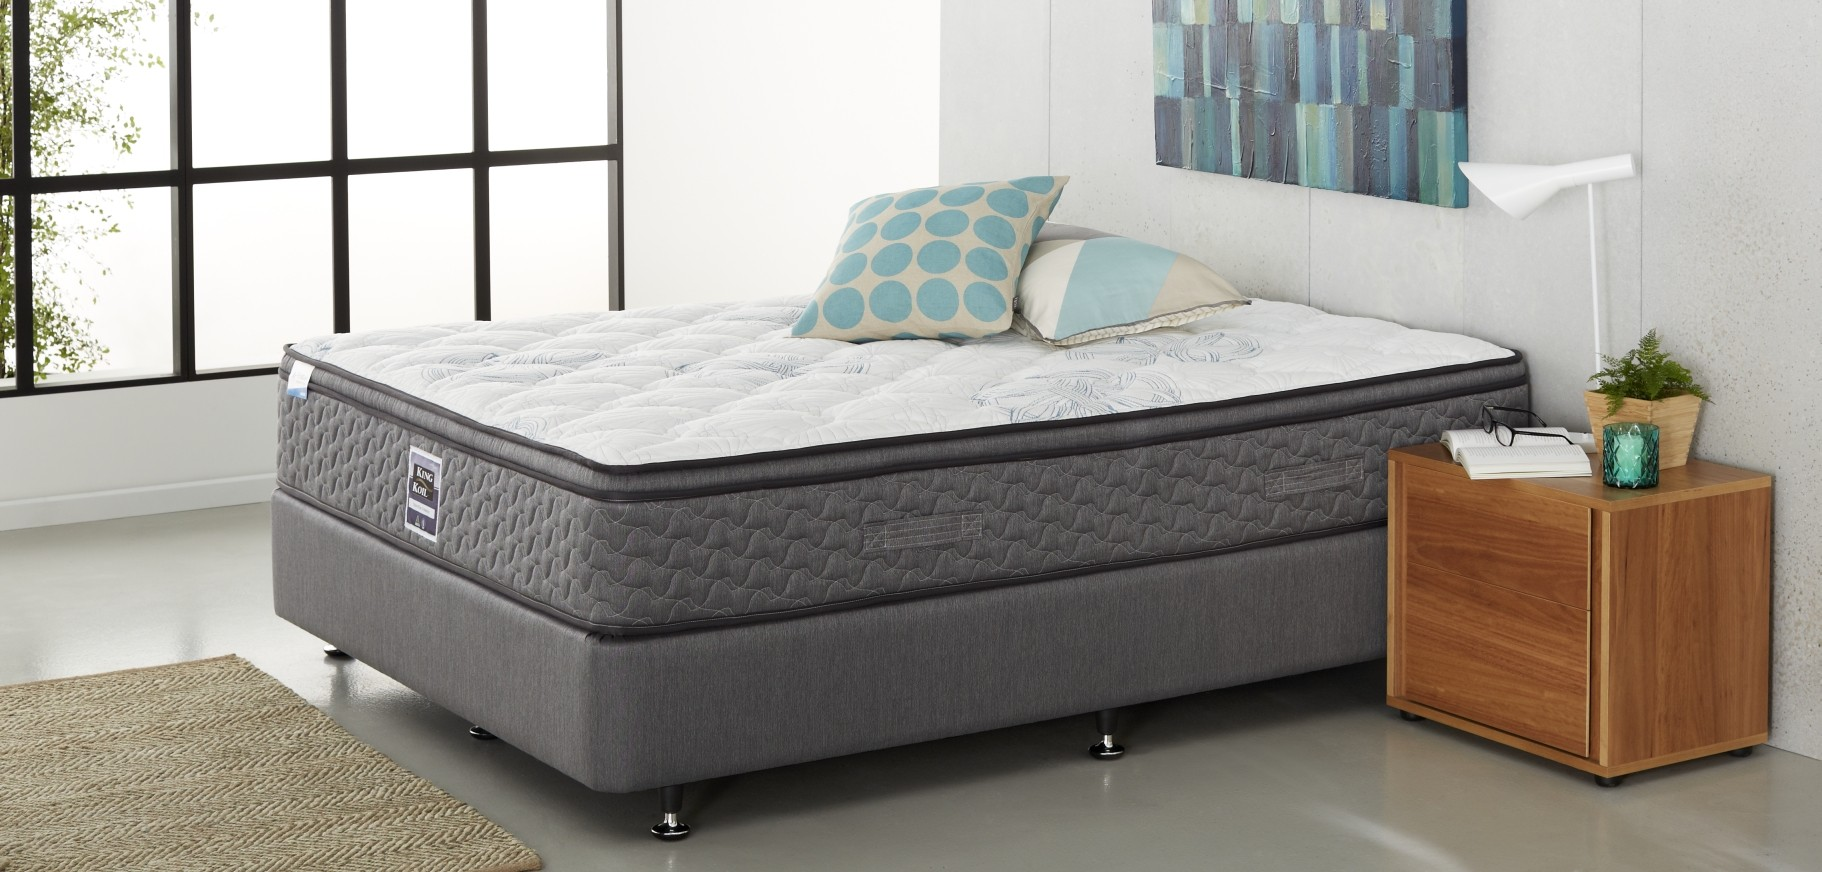 element twin americanbedding chiropractor classic the recommended mattress products